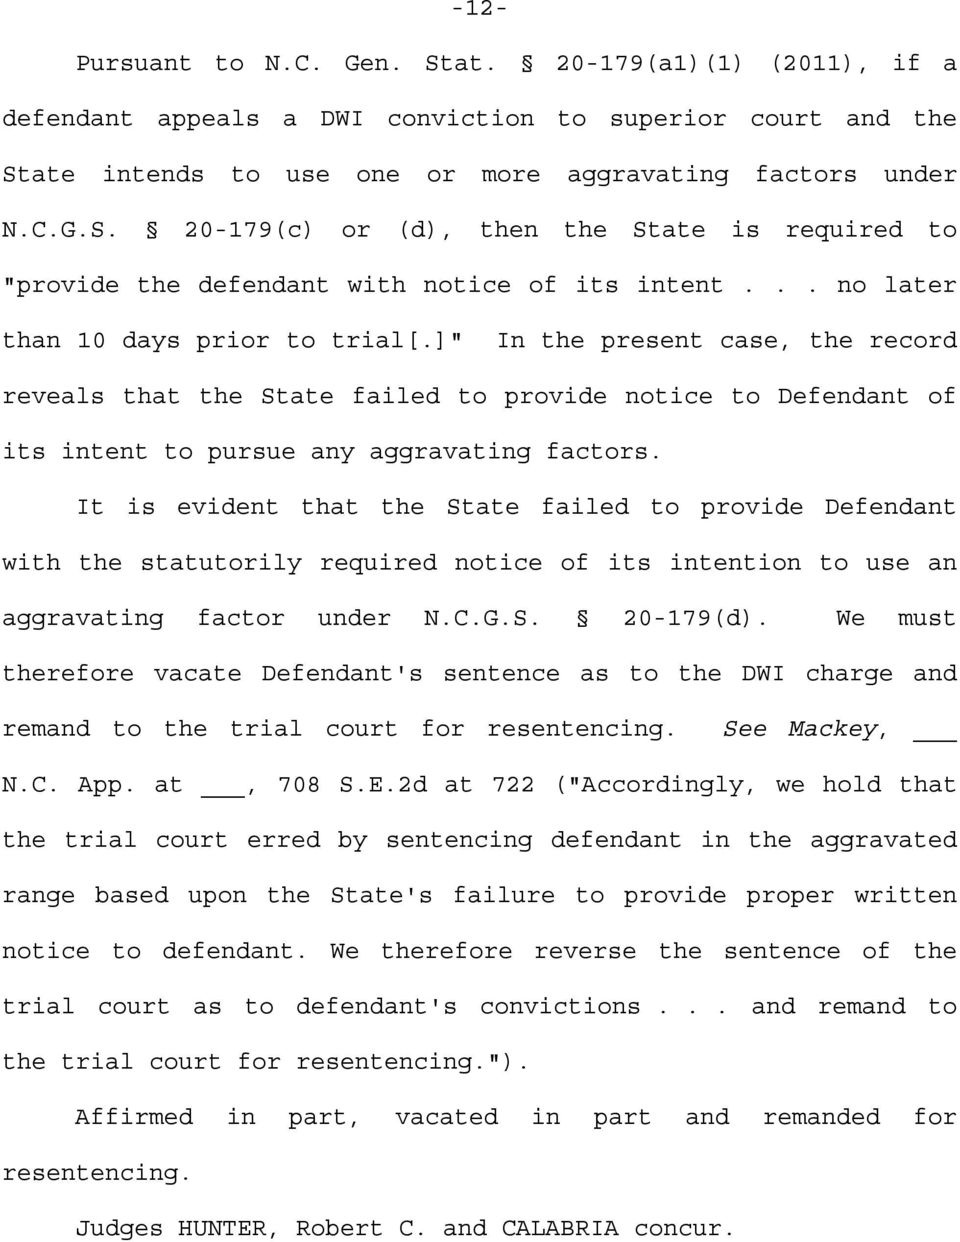 It is evident that the State failed to provide Defendant with the statutorily required notice of its intention to use an aggravating factor under N.C.G.S. 20-179(d).